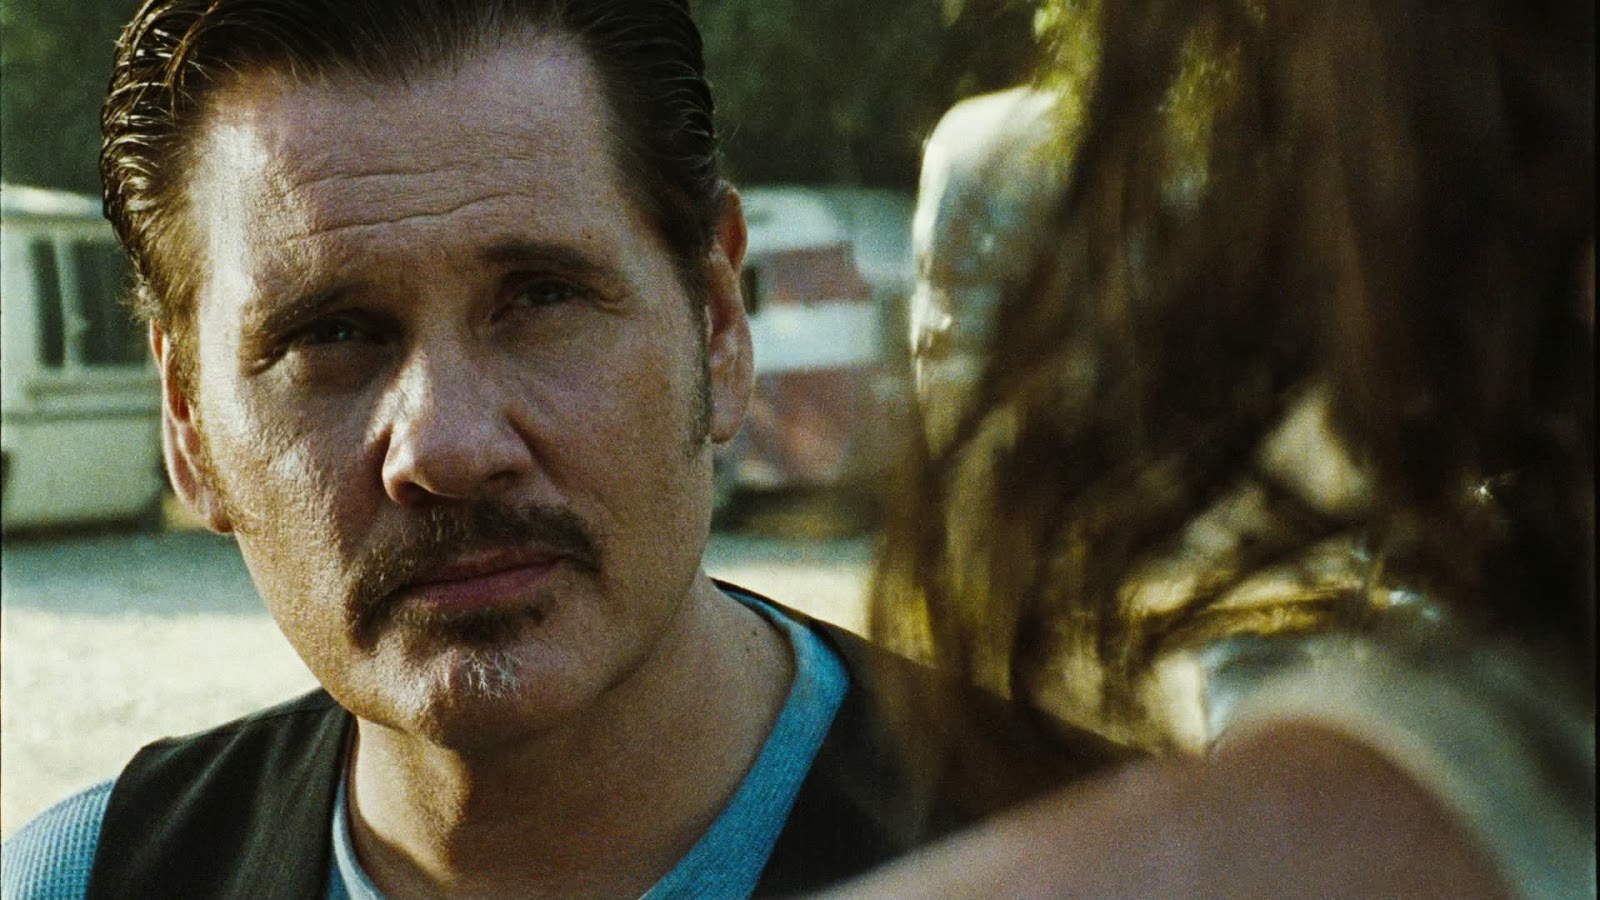 William Forsythe as Sheriff John Quincy Wydell in The Devil's Rejects (2005)